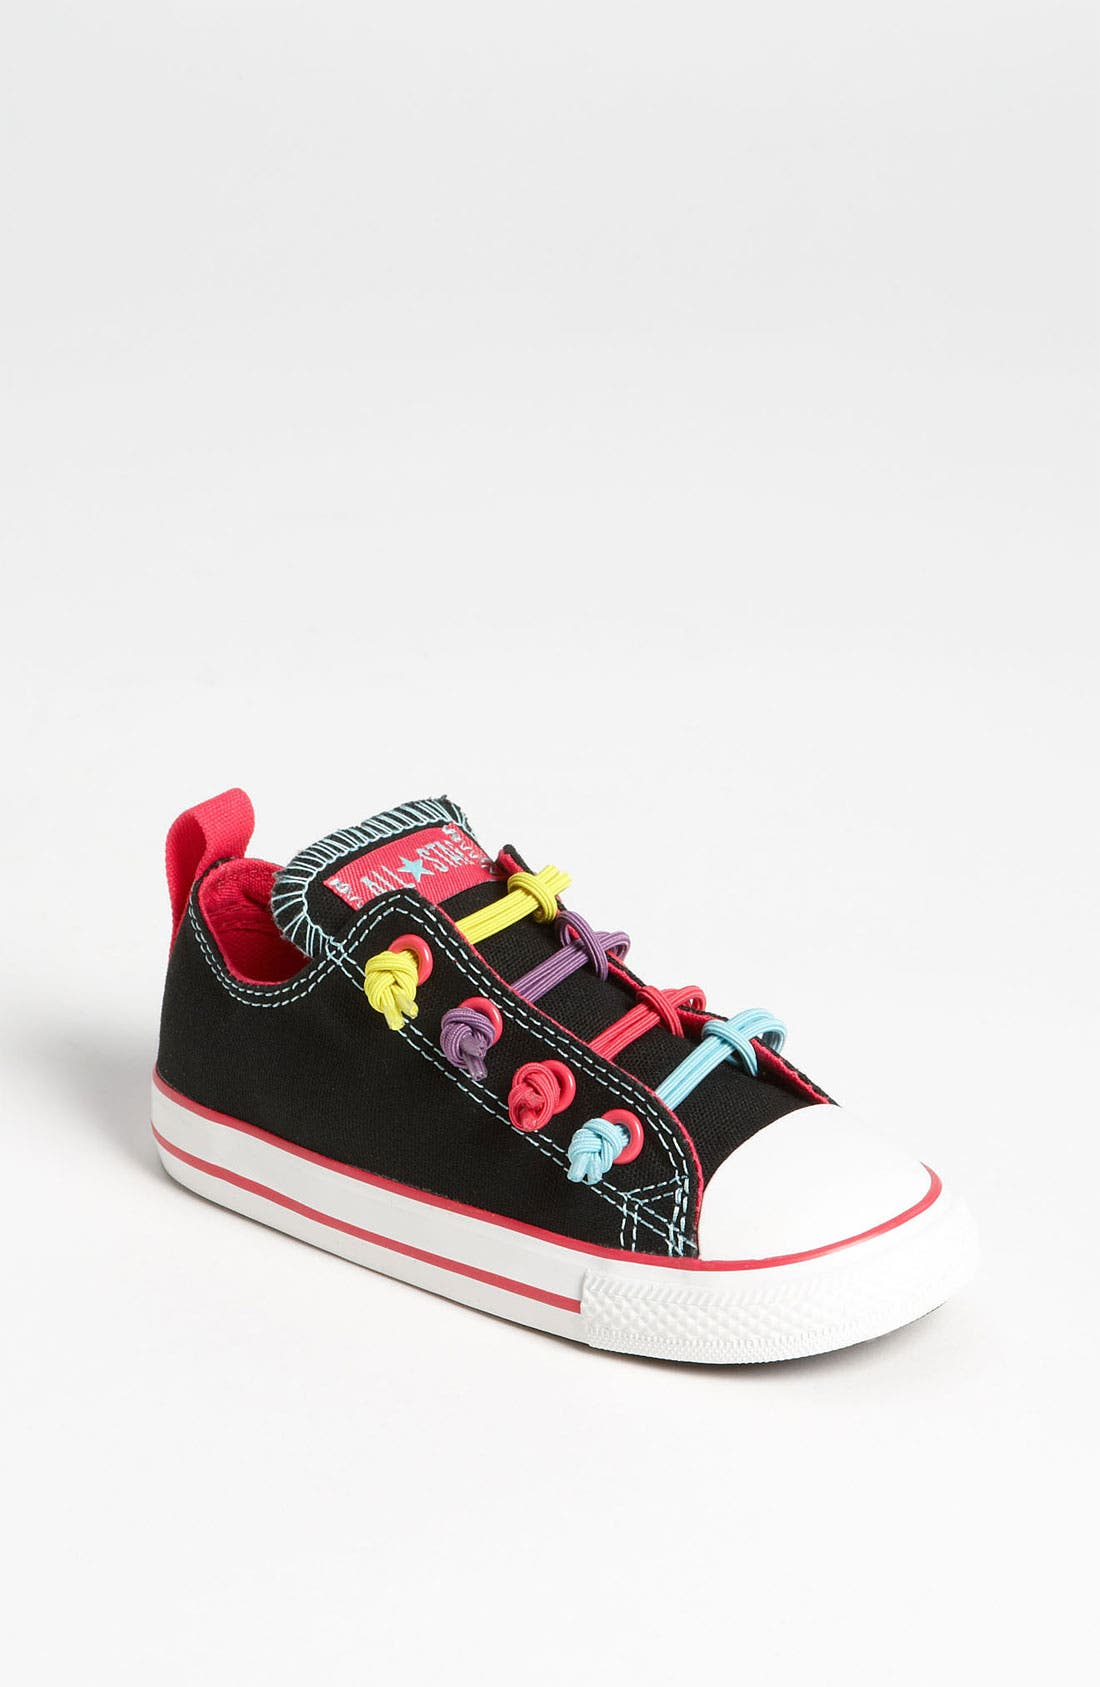 Alternate Image 1 Selected - Converse Chuck Taylor® 'Loop 2 Knot' Sneaker (Baby, Walker & Toddler)